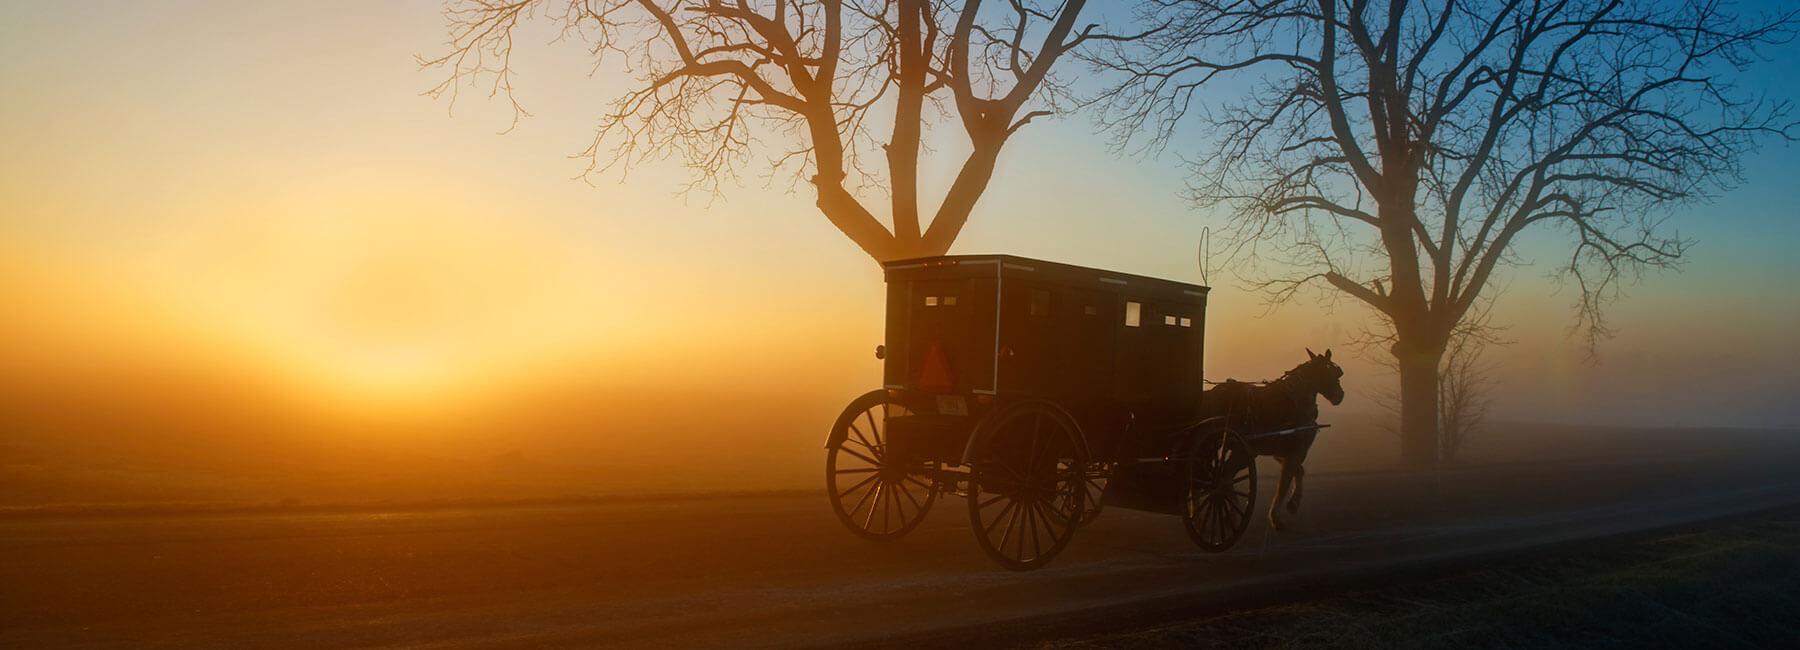 Elkhart Amish Buggy at Dawn